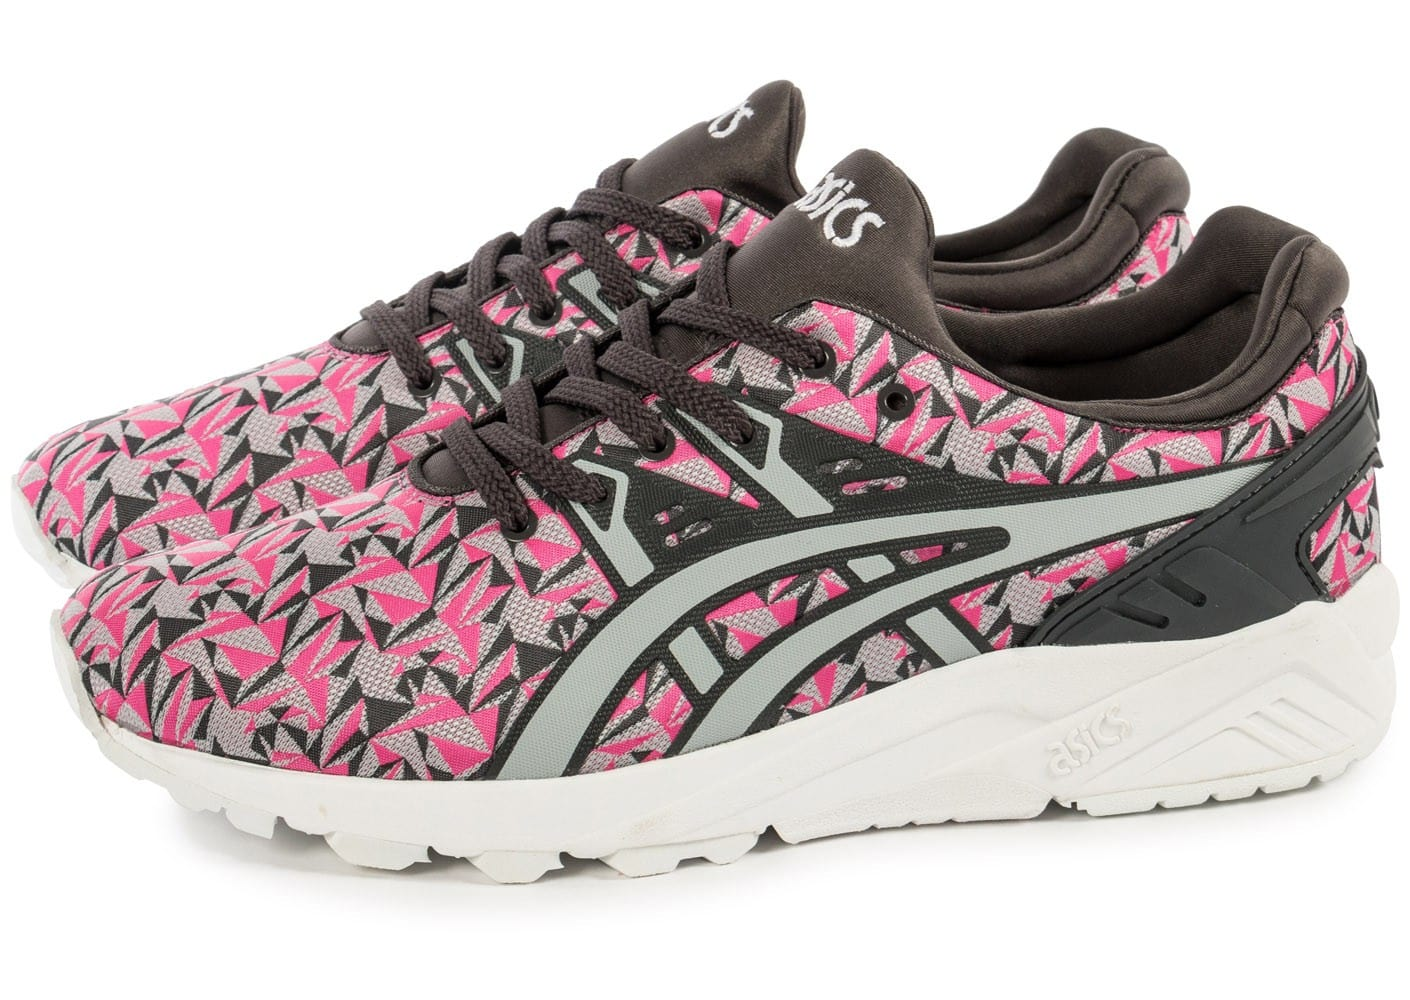 Chaussures Asics Kayano roses homme Q5oZpdq